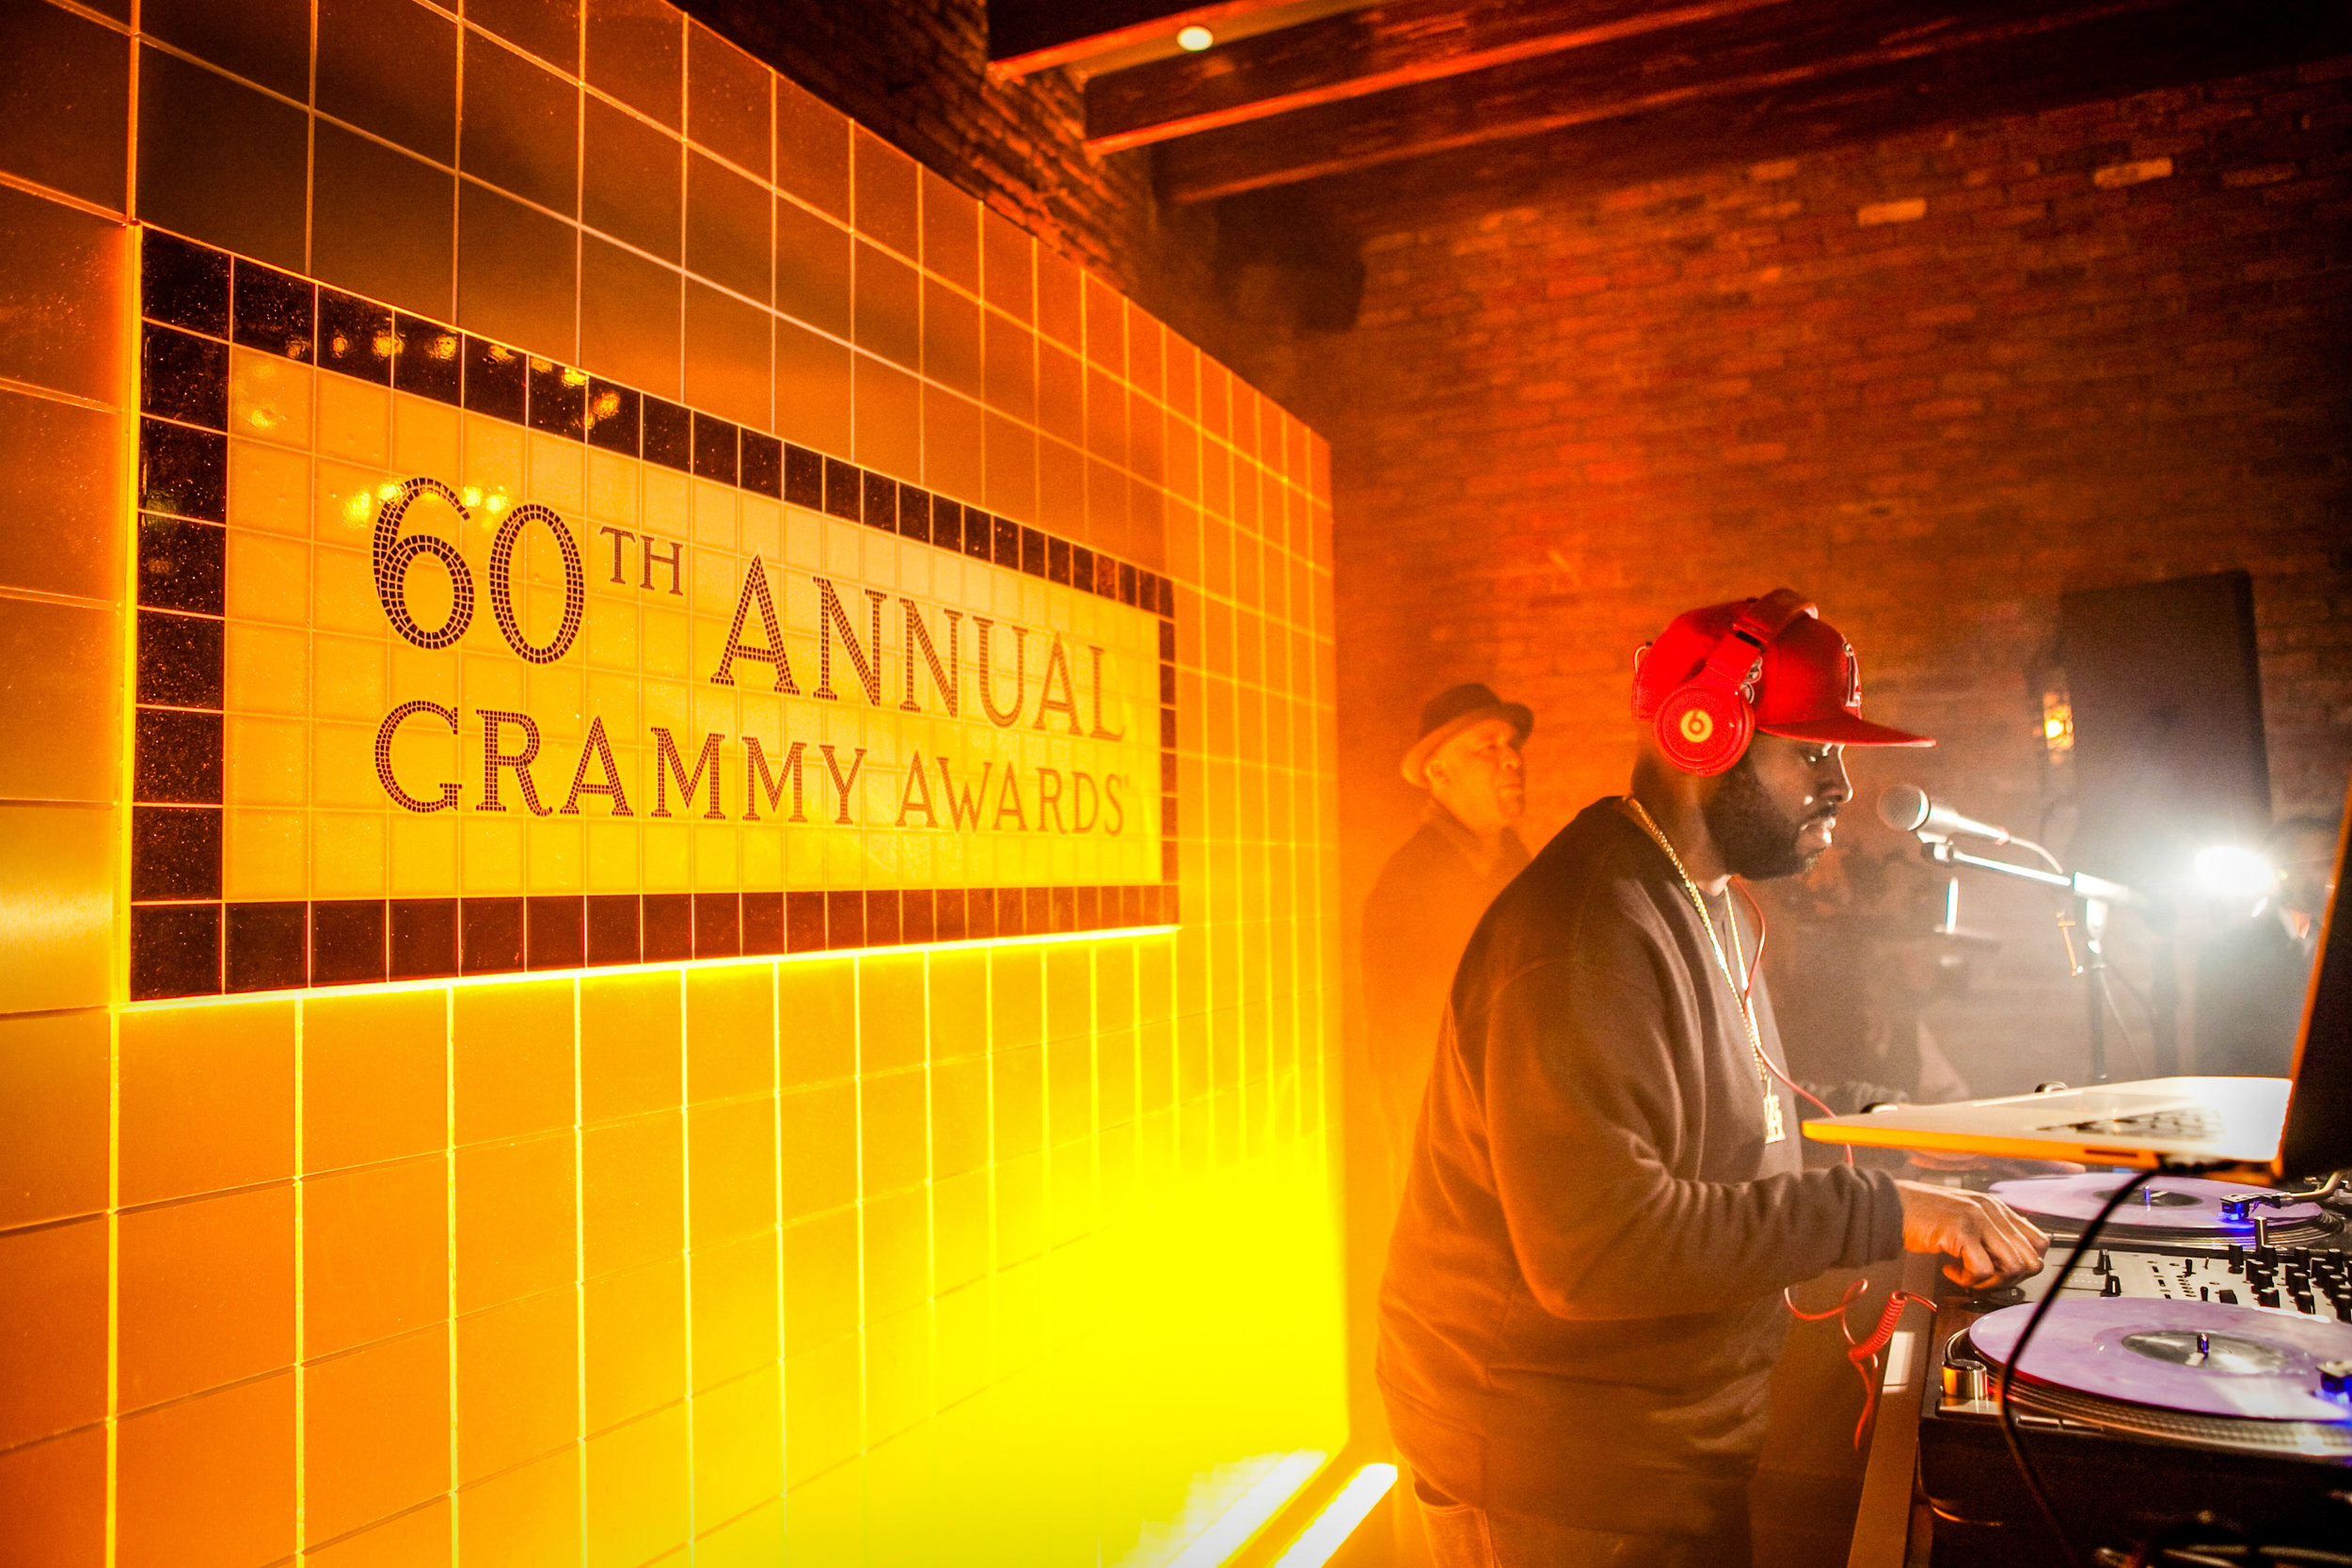 DELTA GRAMMYS_WEBSITE UPDATE-16.JPG